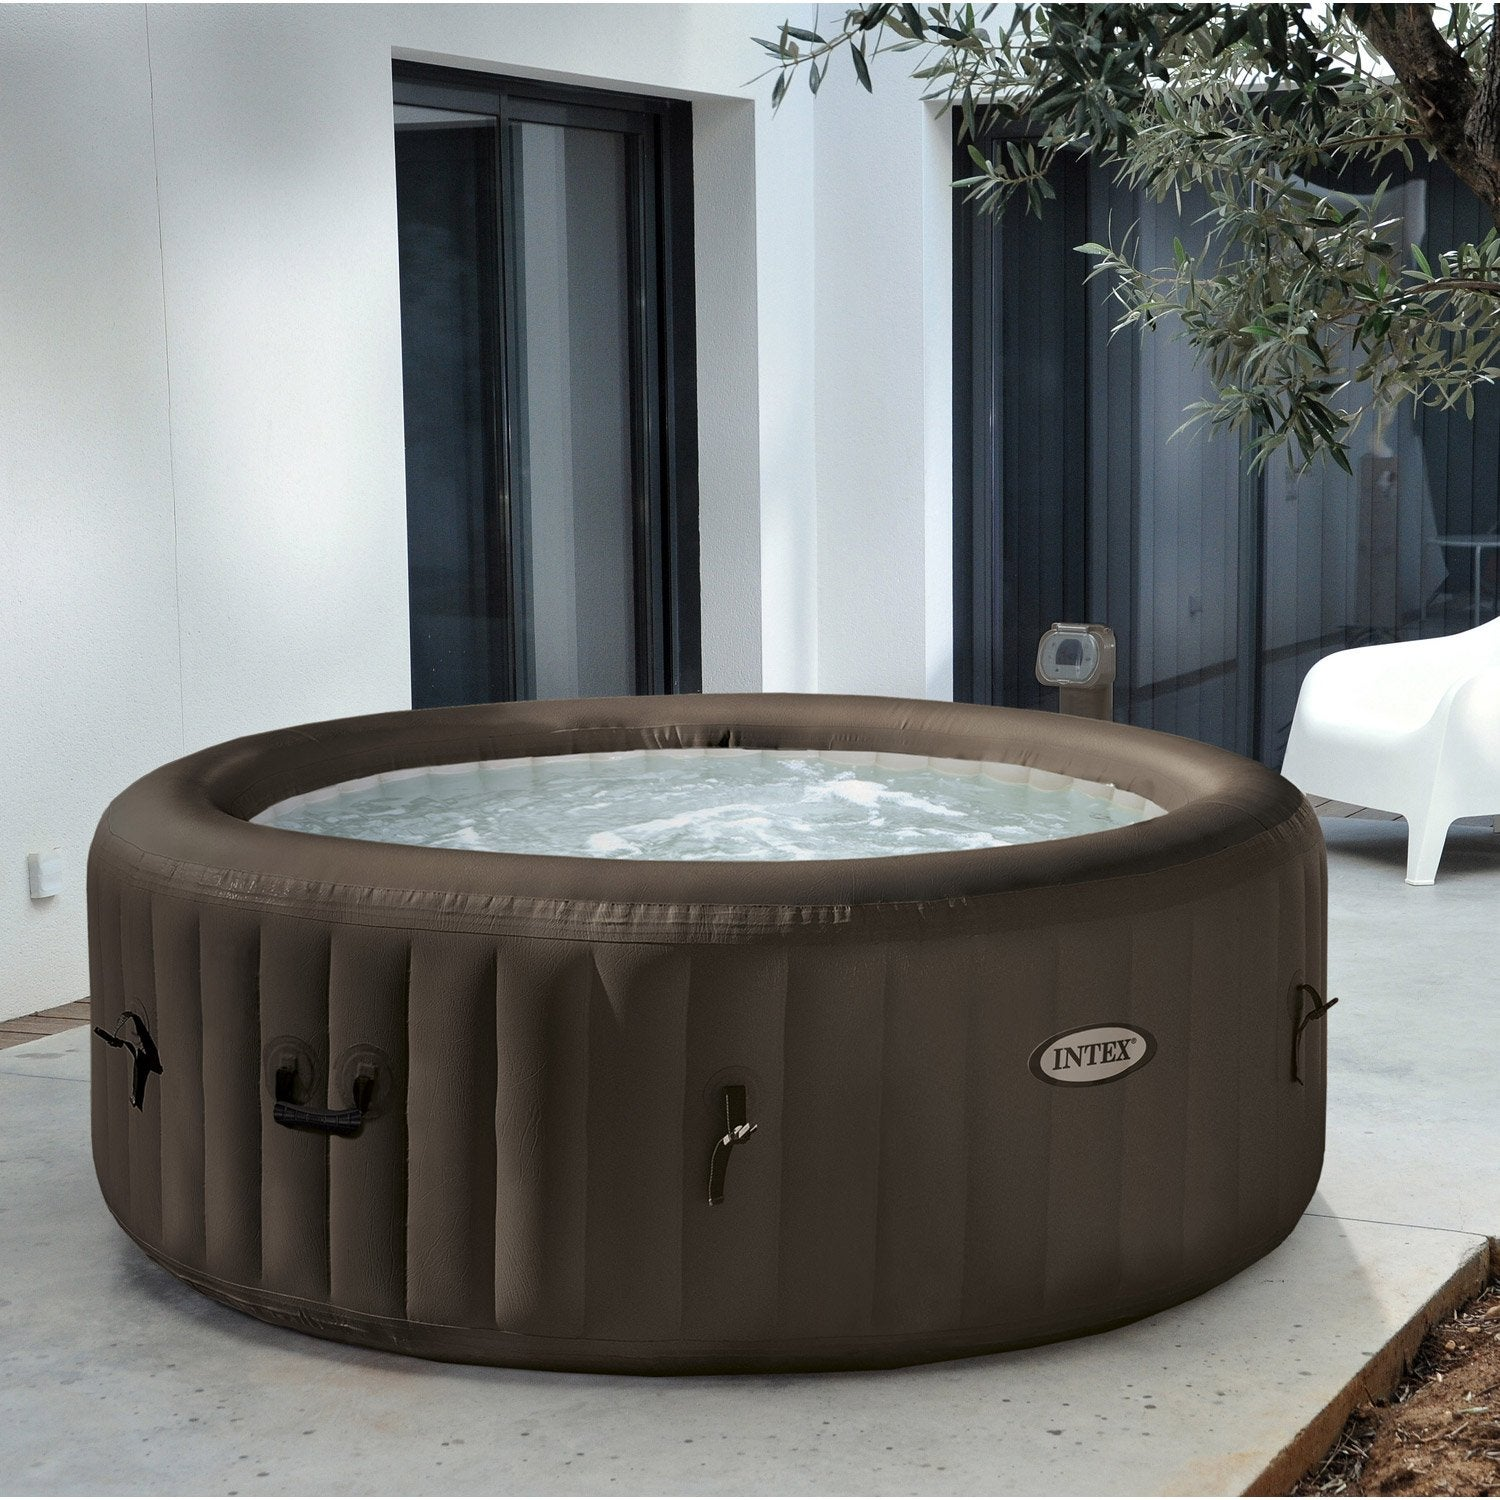 Spa gonflable intex purespa jets rond 4 places assises - Jacuzzi pour jardin ...